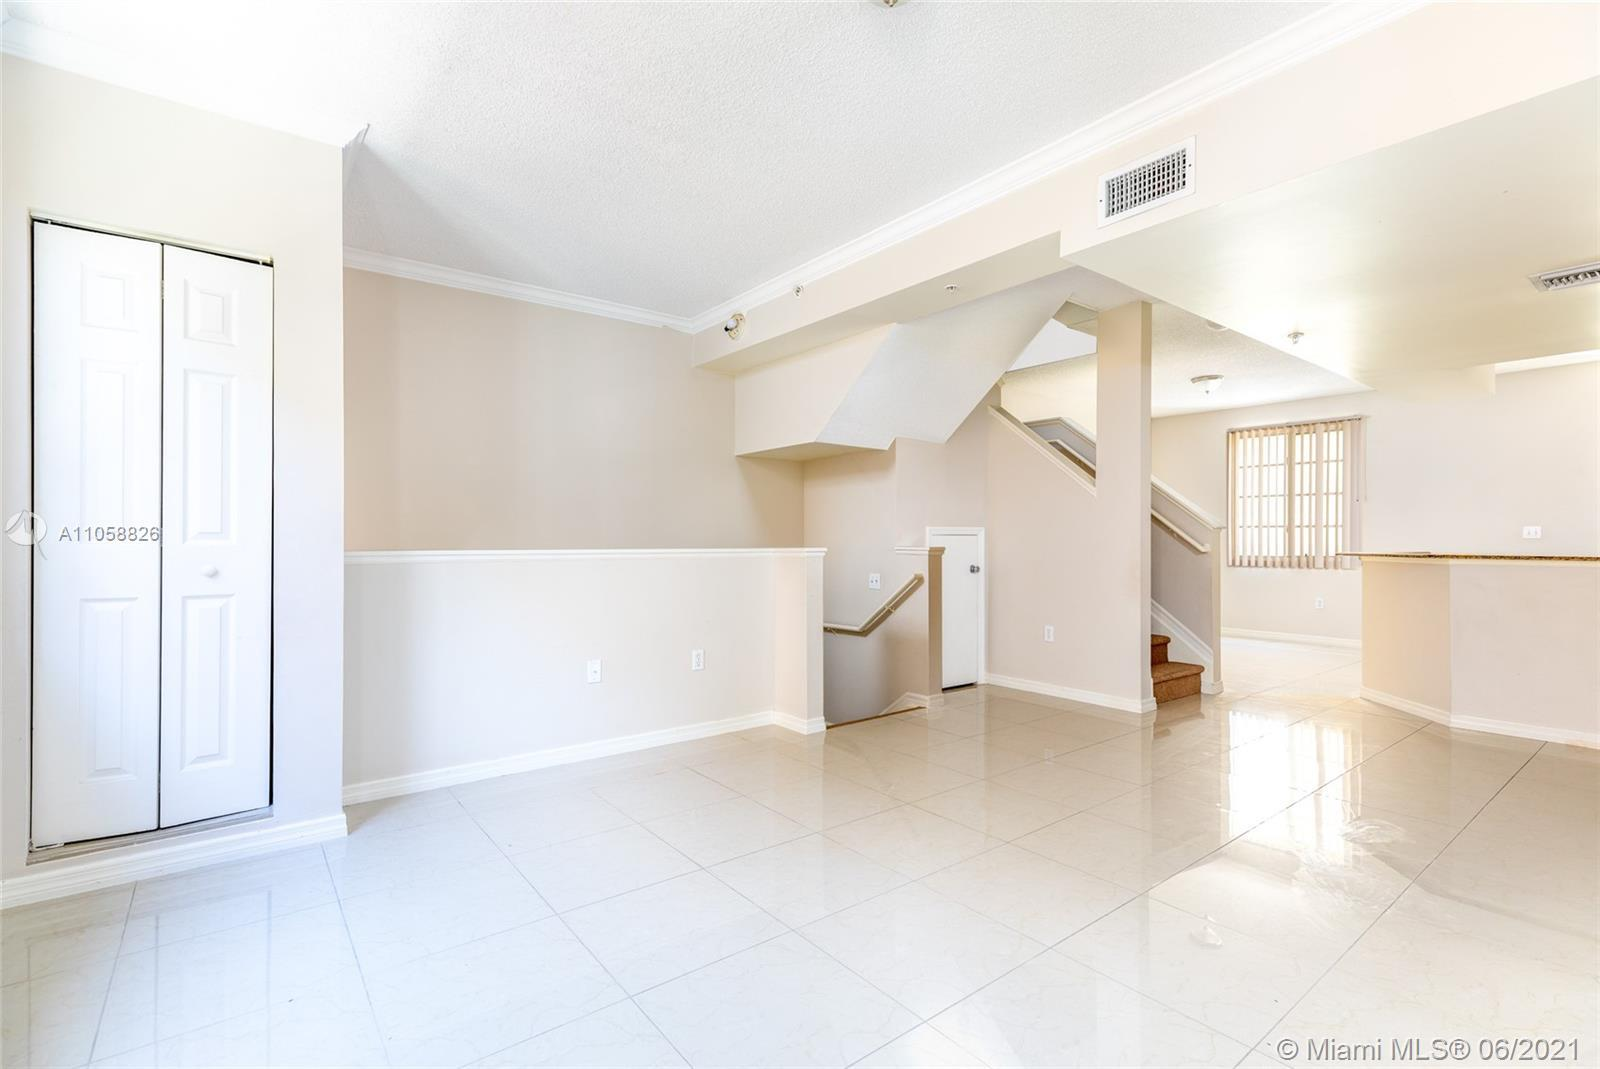 Private three-story townhouse in Aventura!!! This amazing townhome offers a large covered parking ga